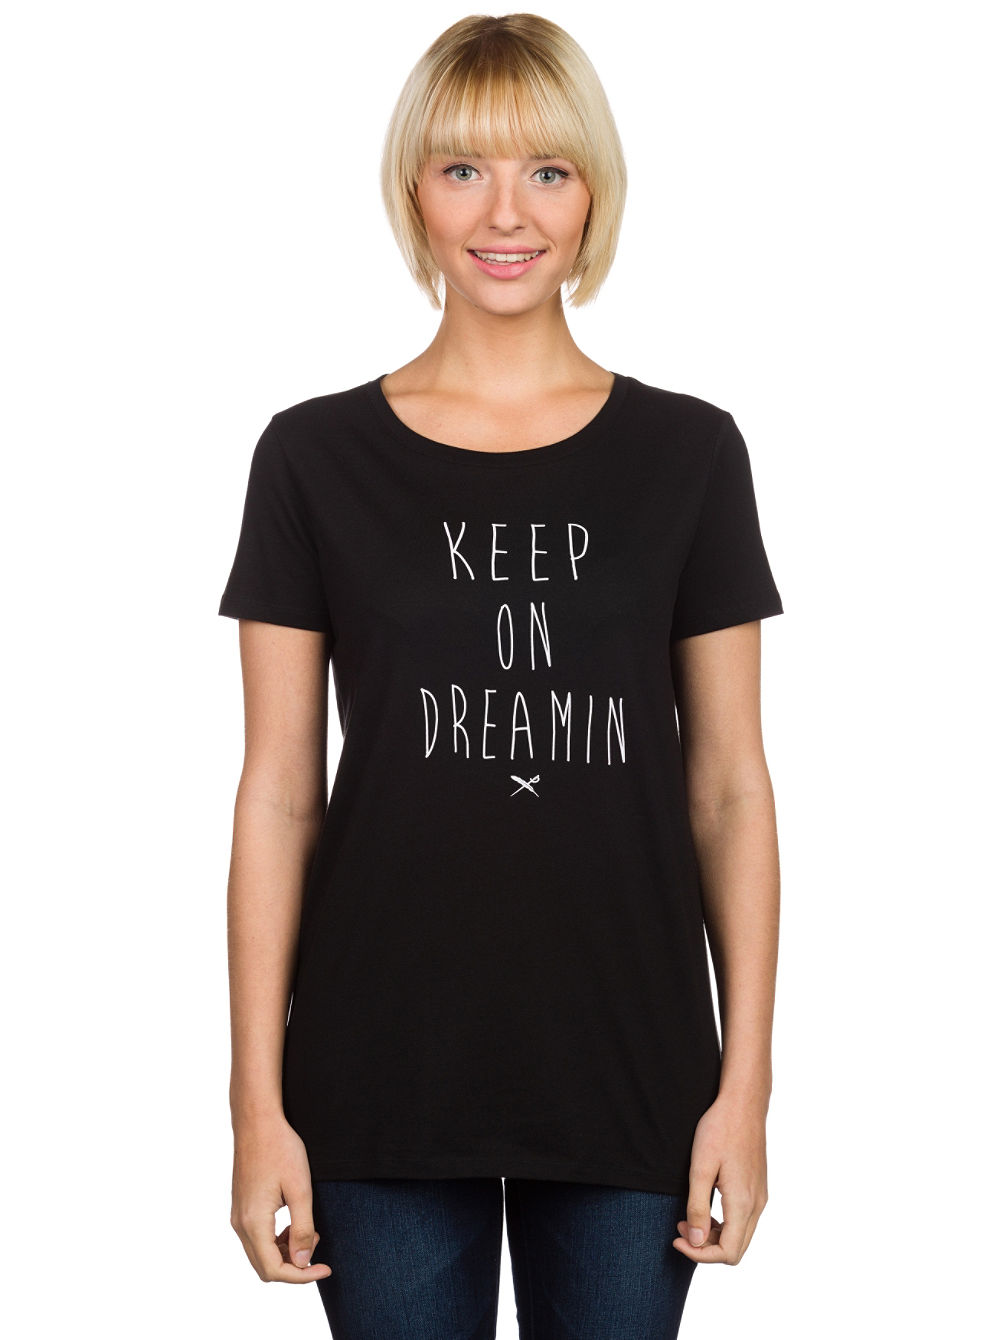 buy iriedaily dreamin t shirt online at blue. Black Bedroom Furniture Sets. Home Design Ideas